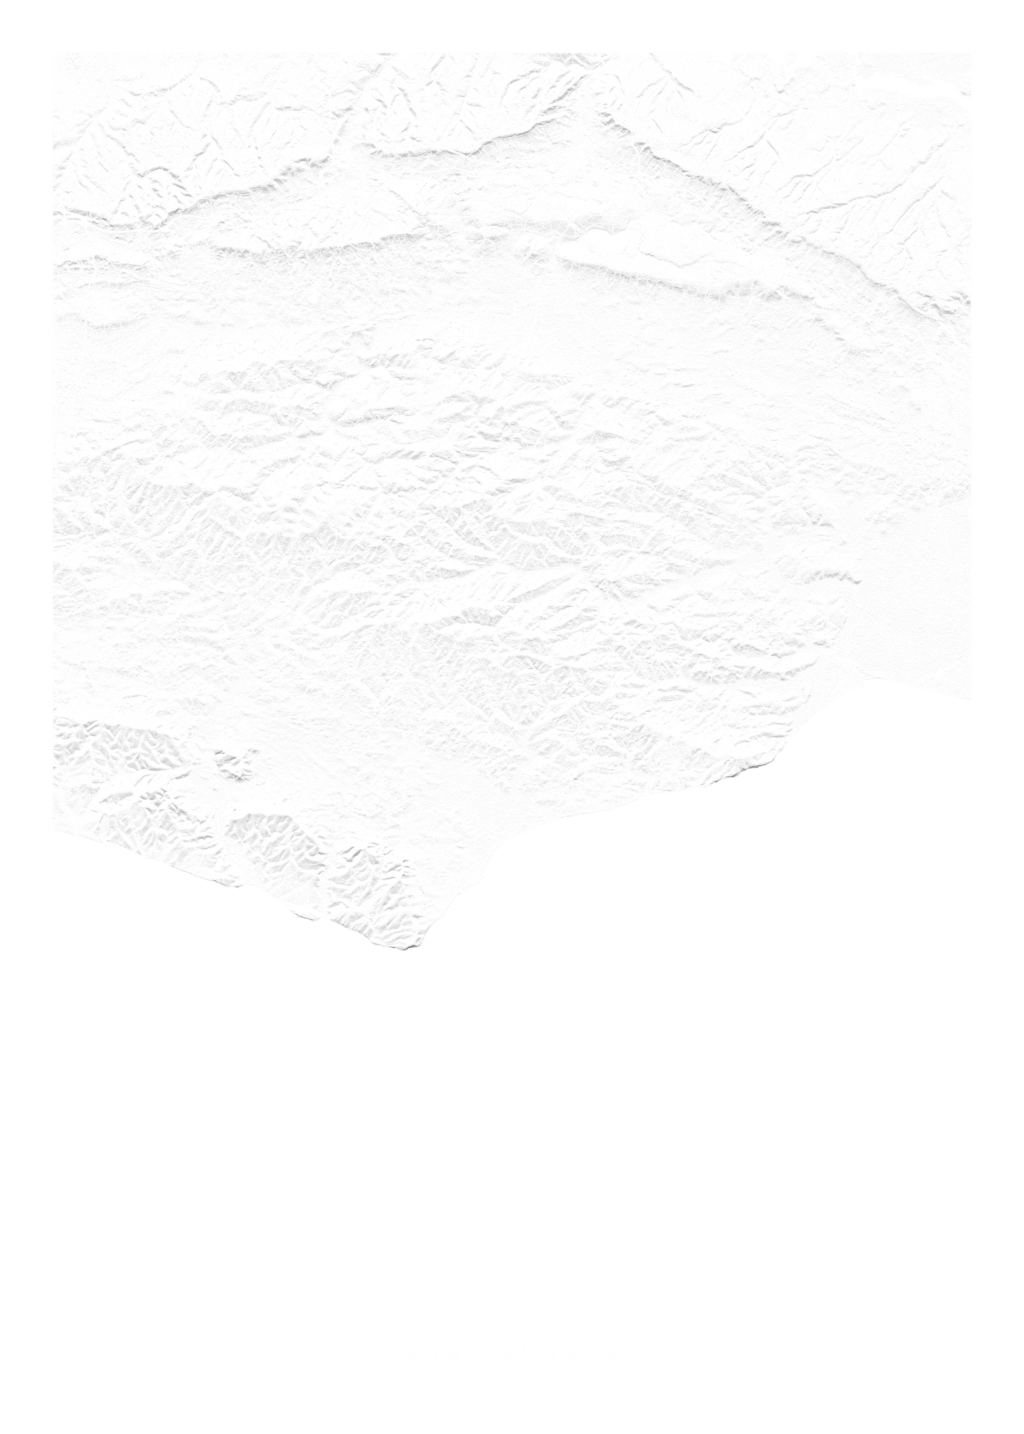 East Sussex wall map